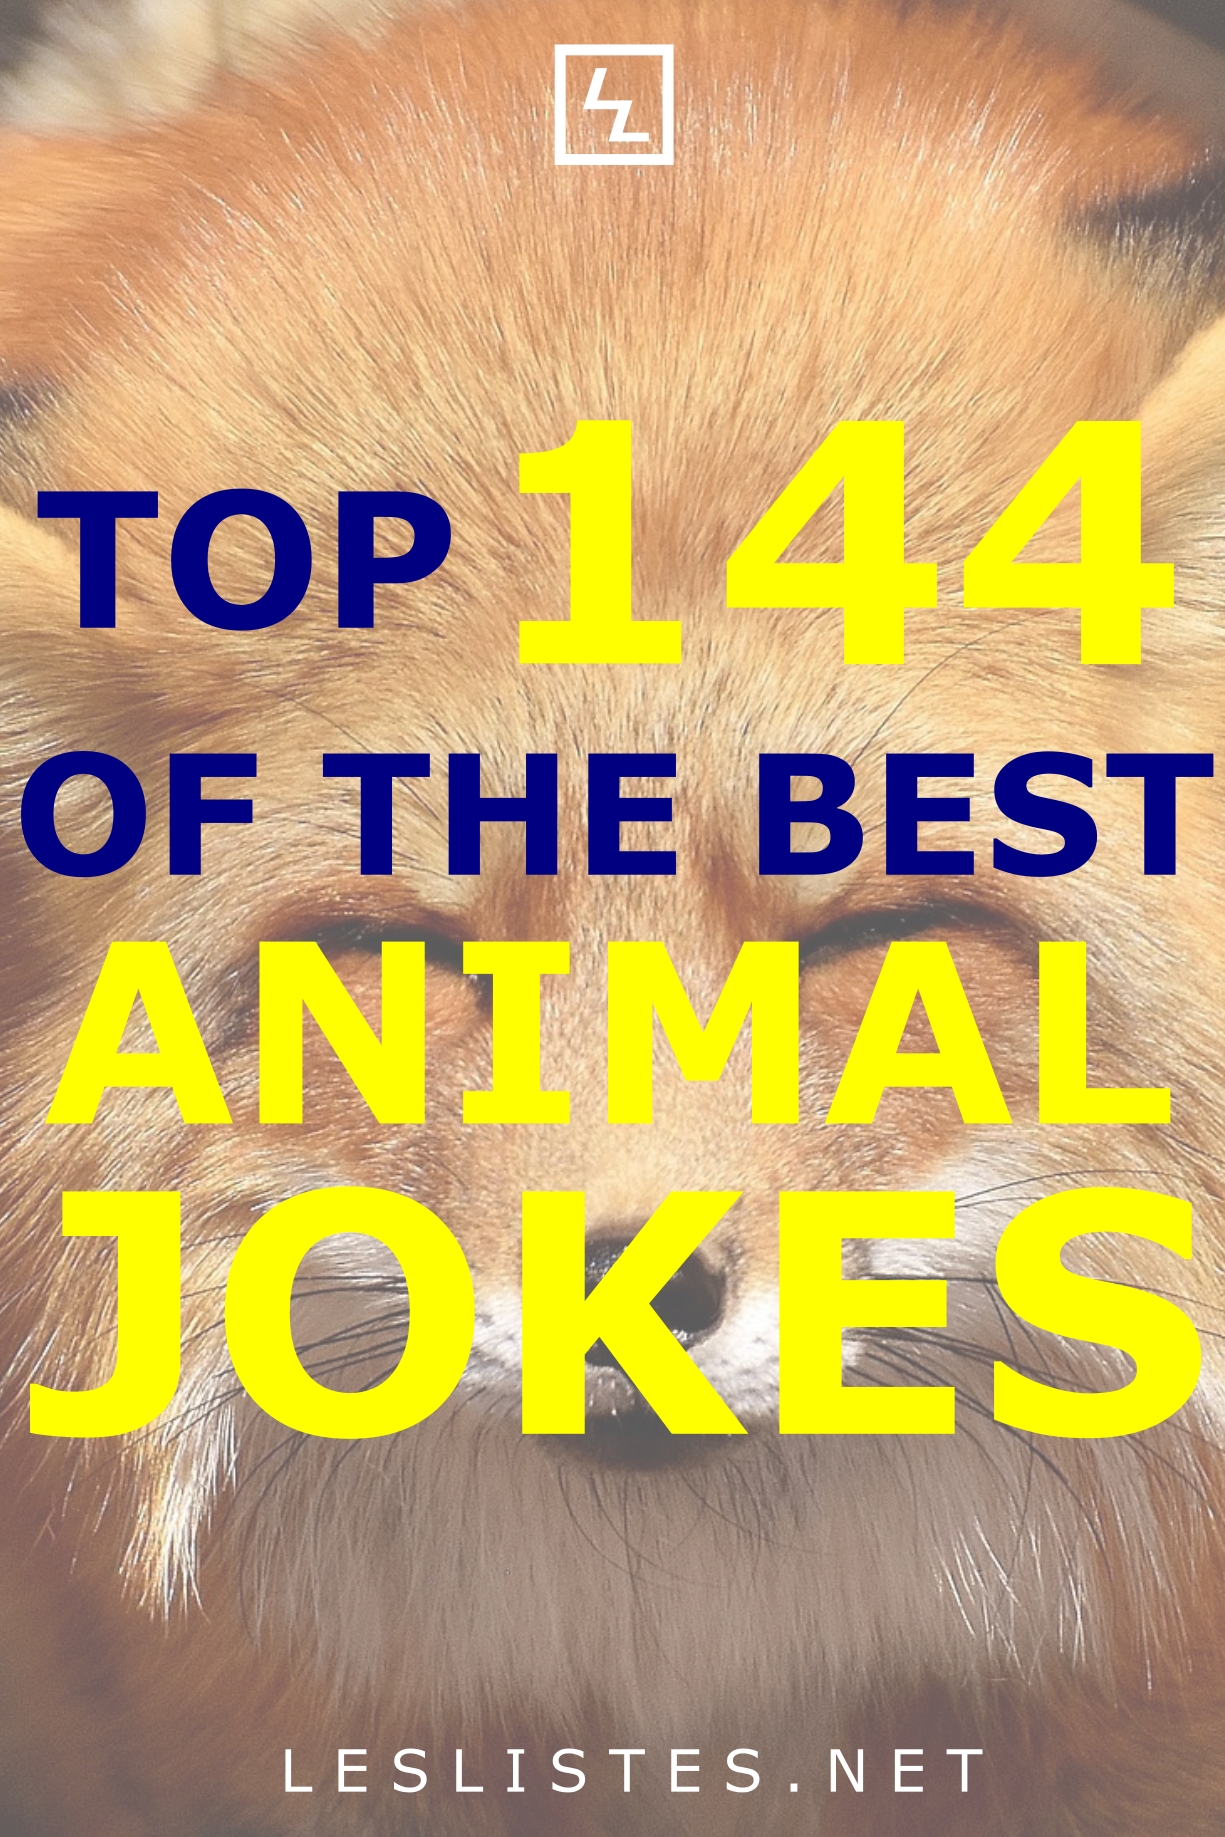 Animals can be very funny. In addition, animals make some